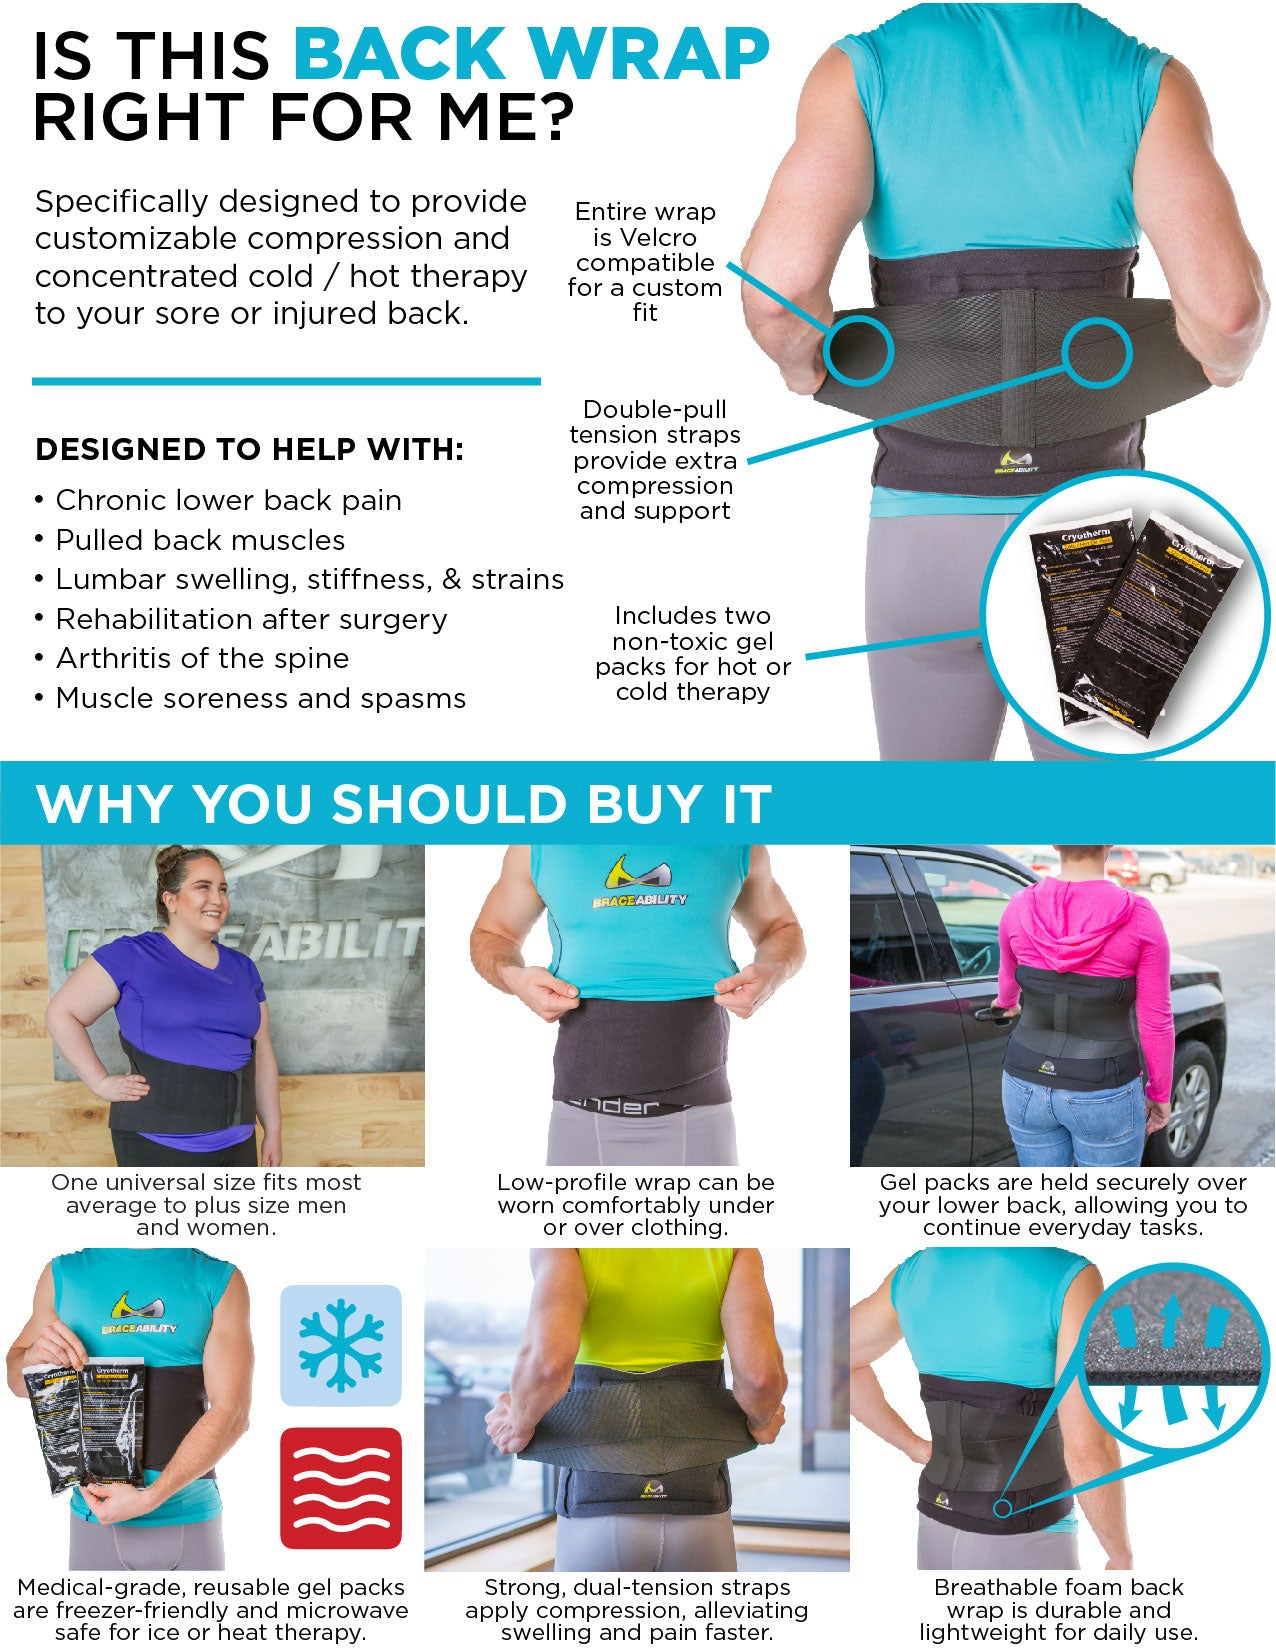 some of the best features of the lower back brace in an infographic